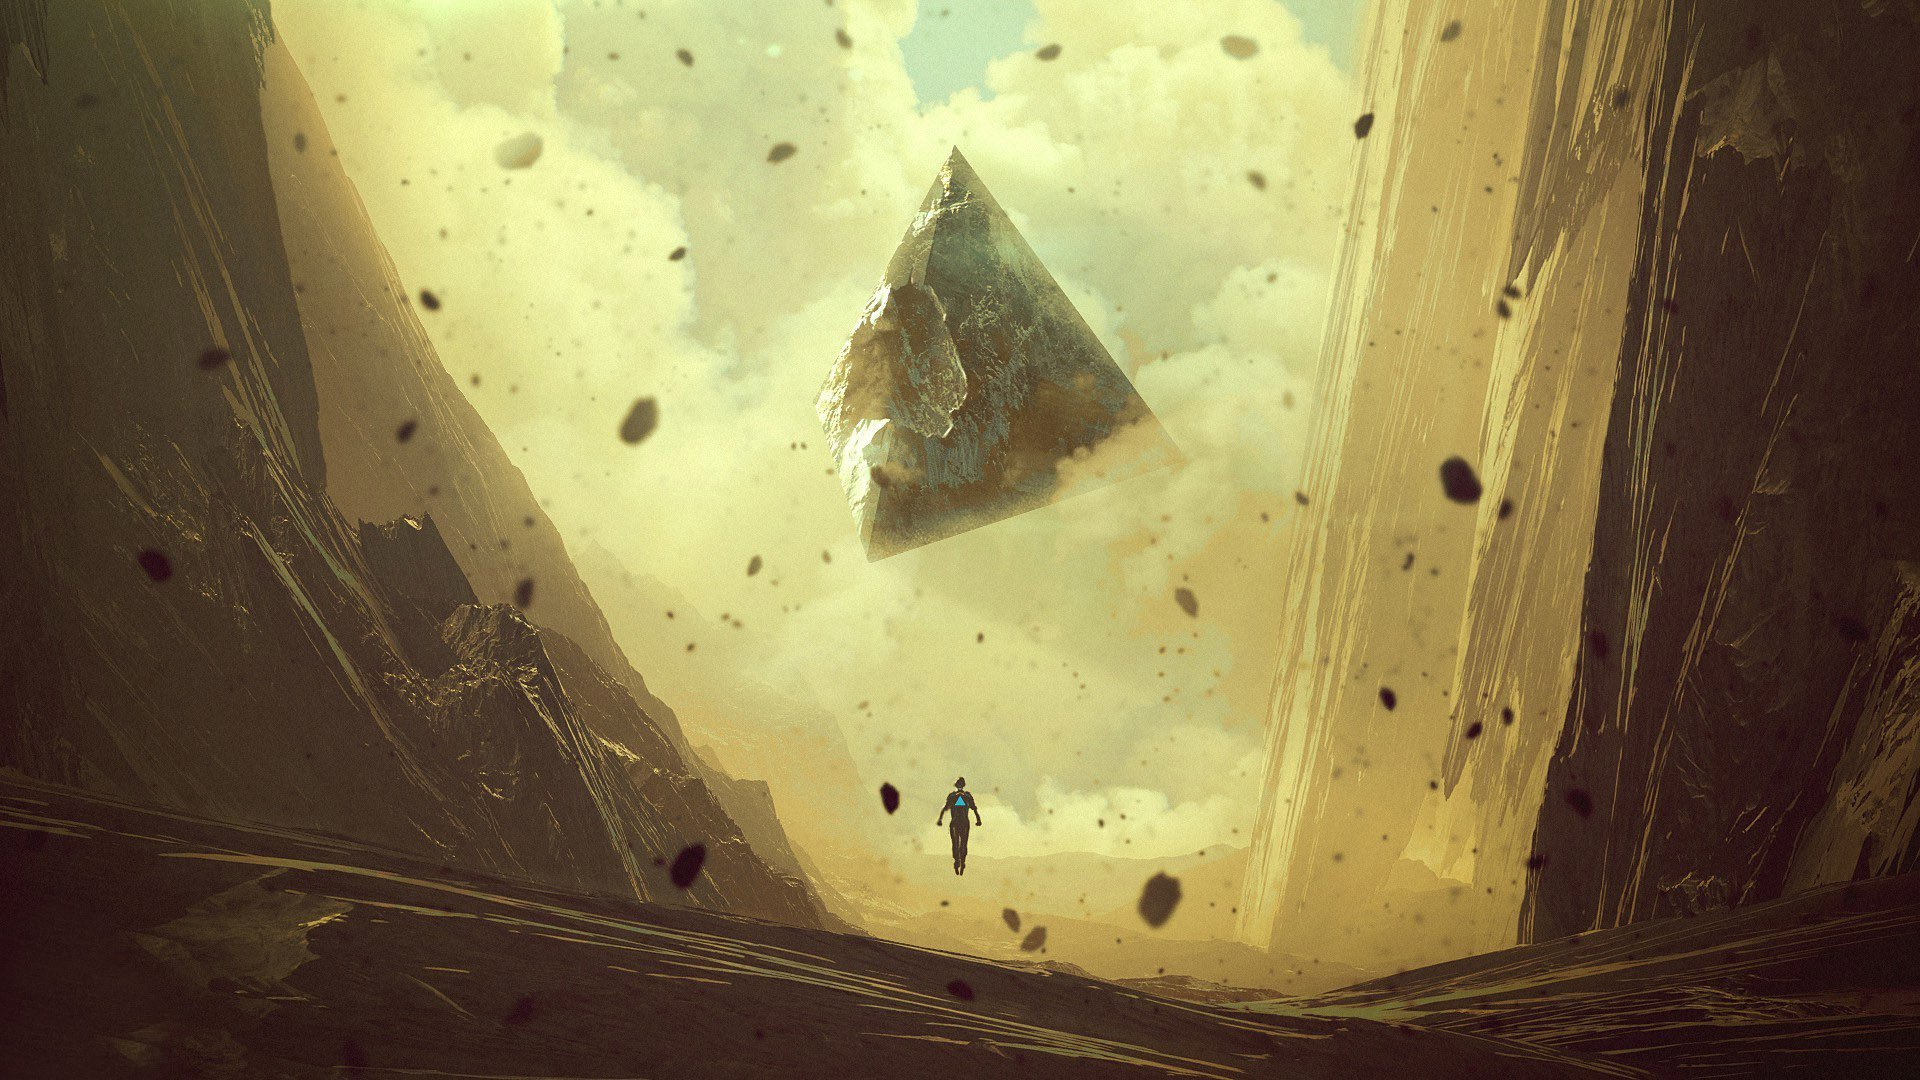 pyramid-spaceship-man.jpg